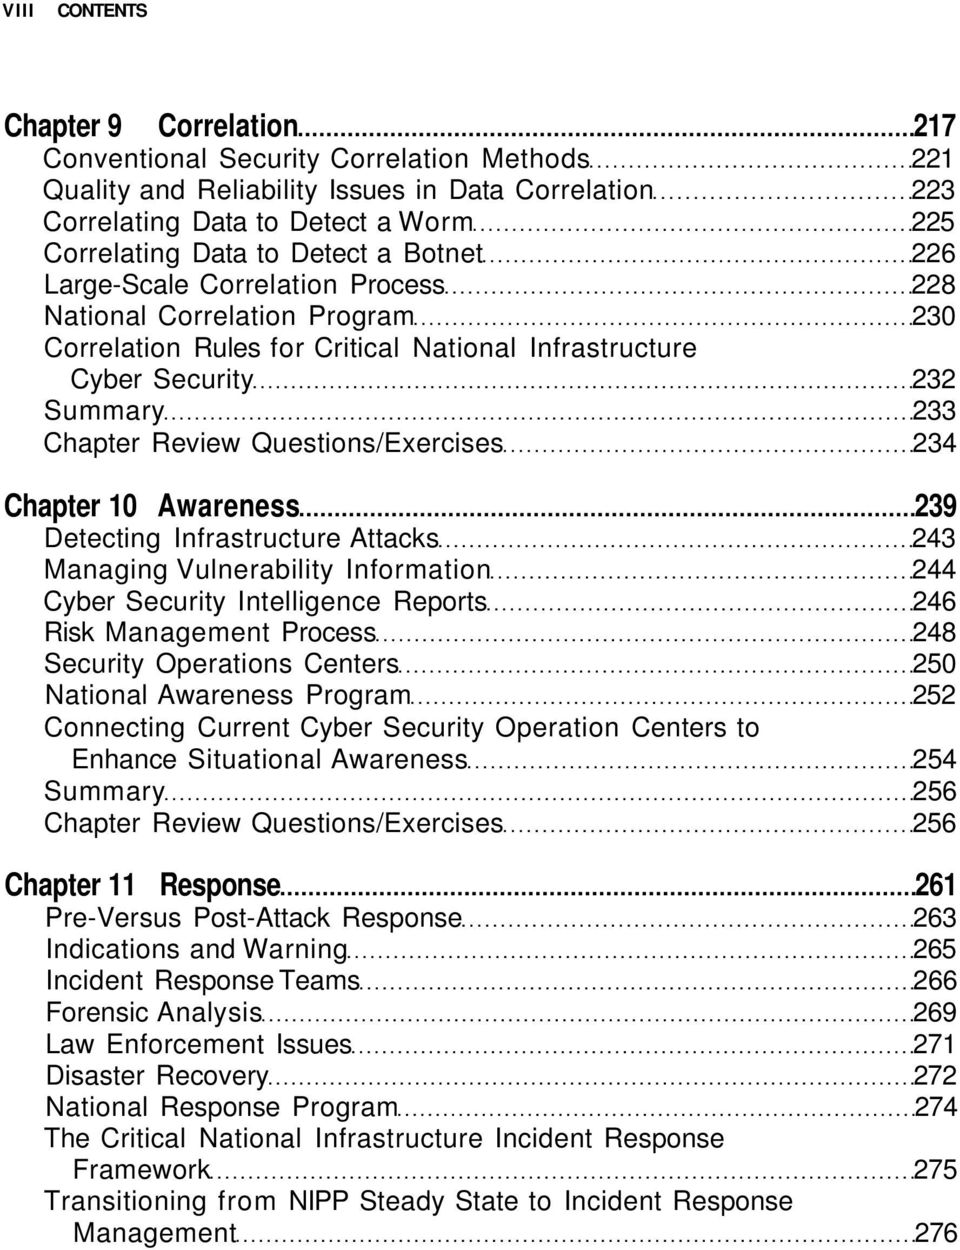 Questions/Exercises 234 Chapter 10 Awareness 239 Detecting Infrastructure Attacks 243 Managing Vulnerability Information 244 Cyber Security Intelligence Reports 246 Risk Management Process 248